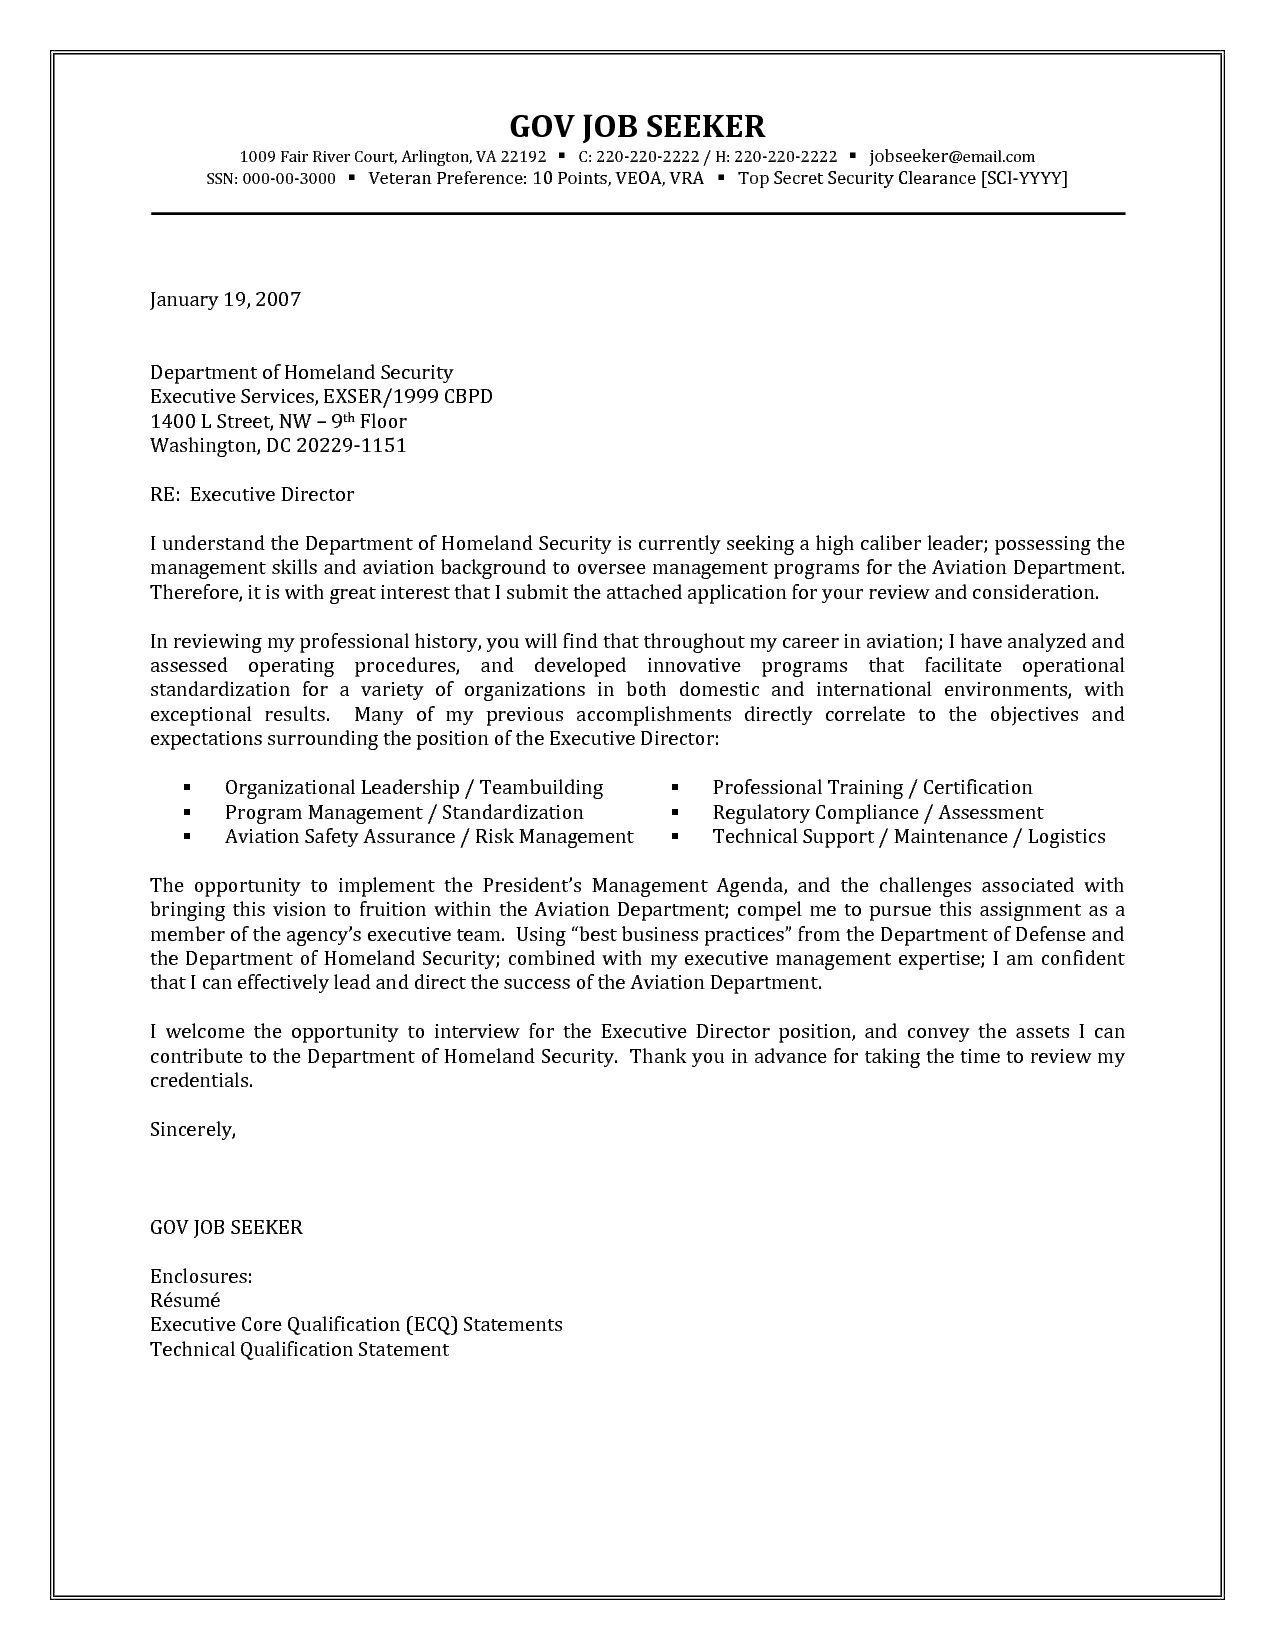 Resume For Government Job Government Resume Cover Letter Examples  Httpjobresumesample